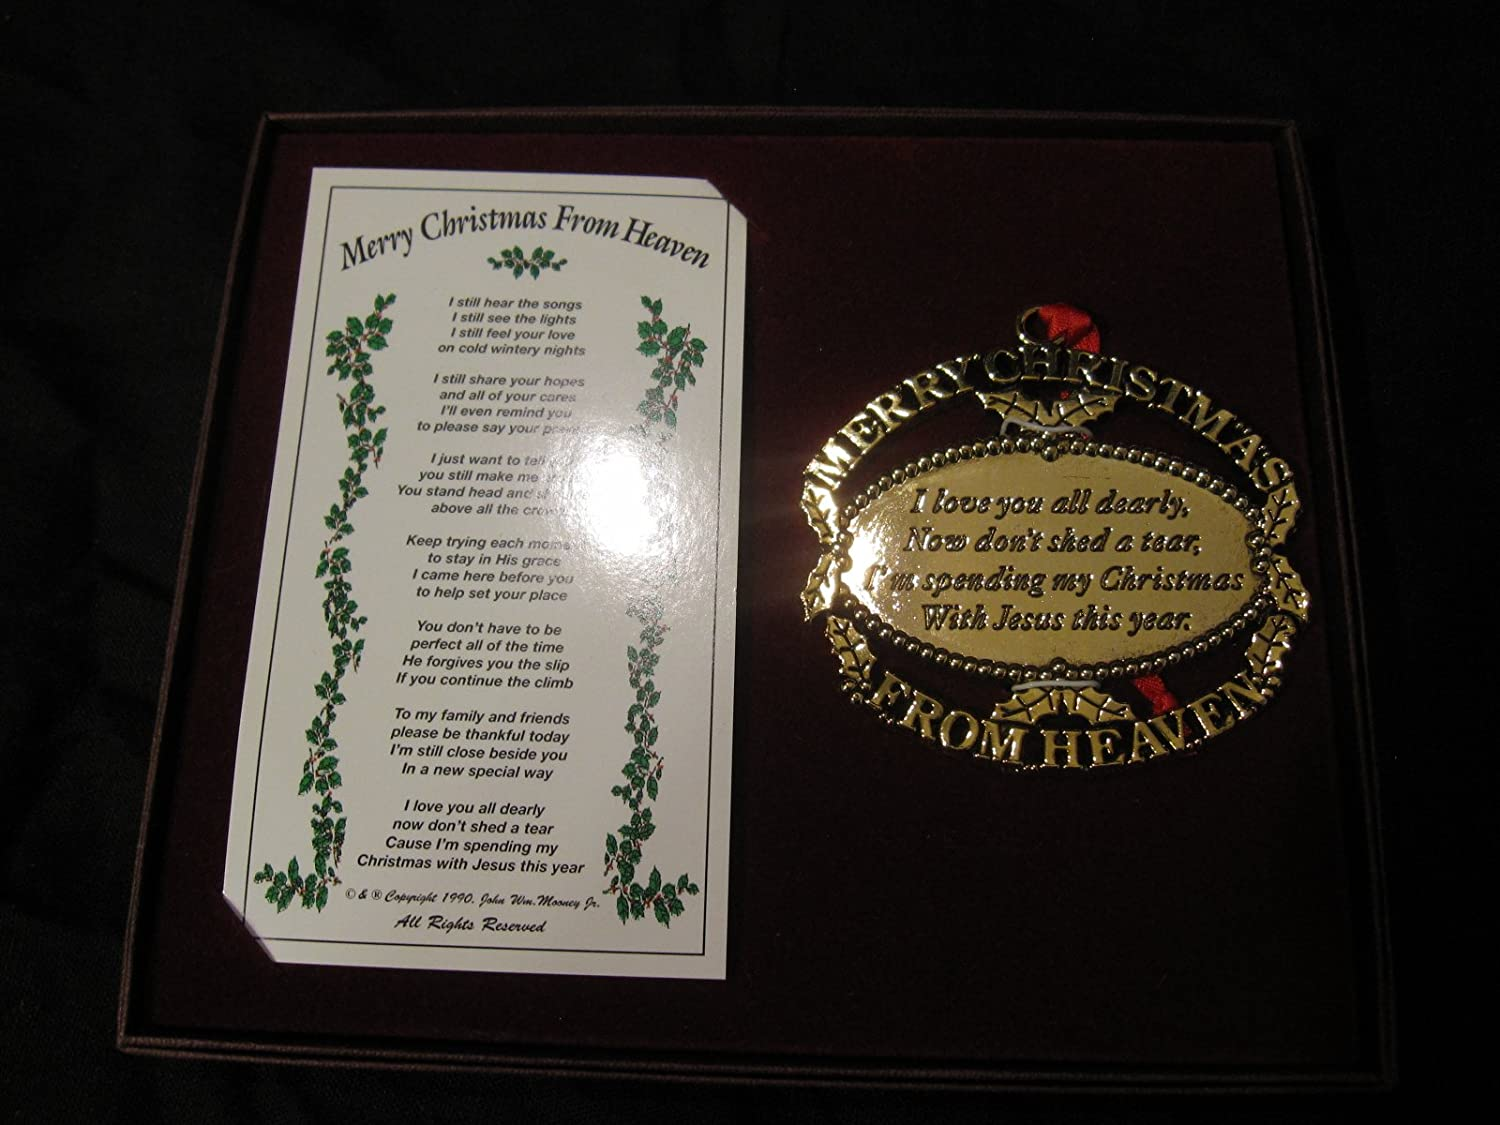 Amazon.com: Merry Christmas from Heaven Gold Keepsake Ornament ...